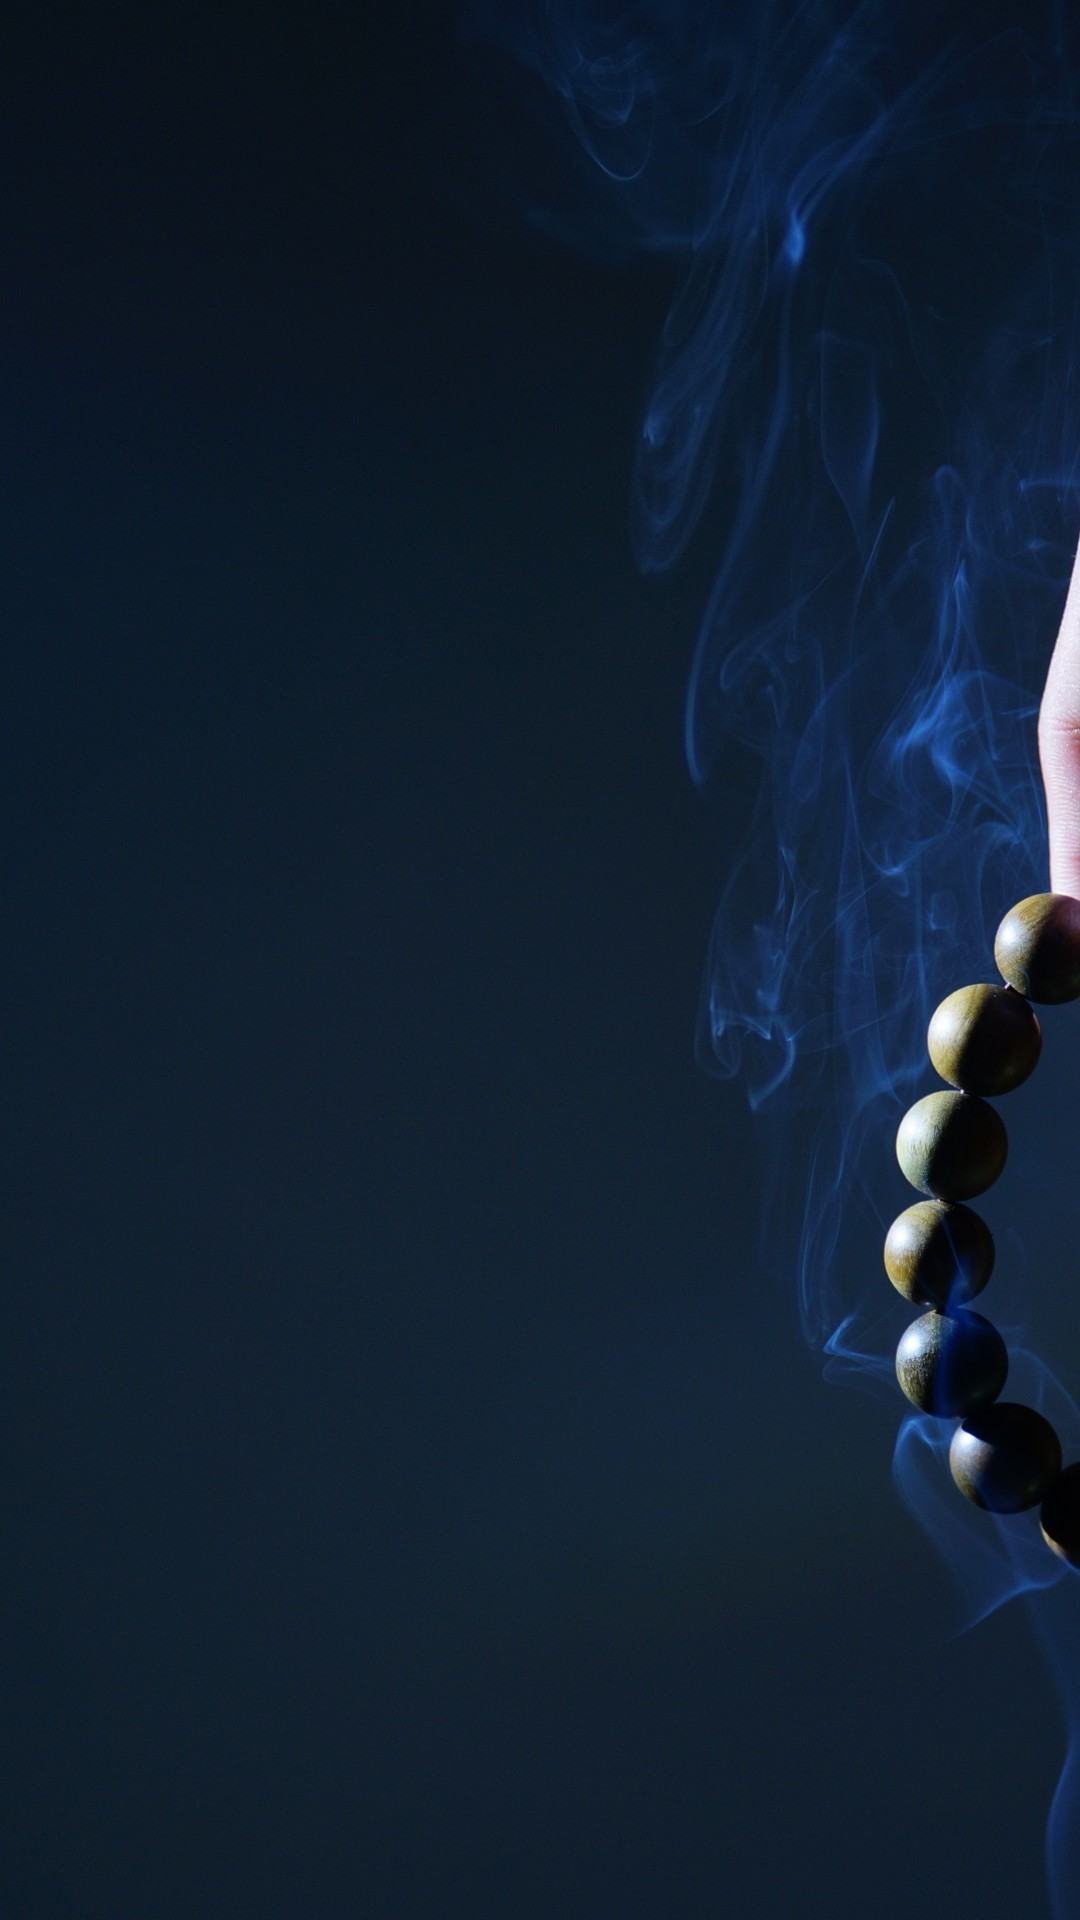 Res: 1080x1920, Rosary, Smoke, Hand